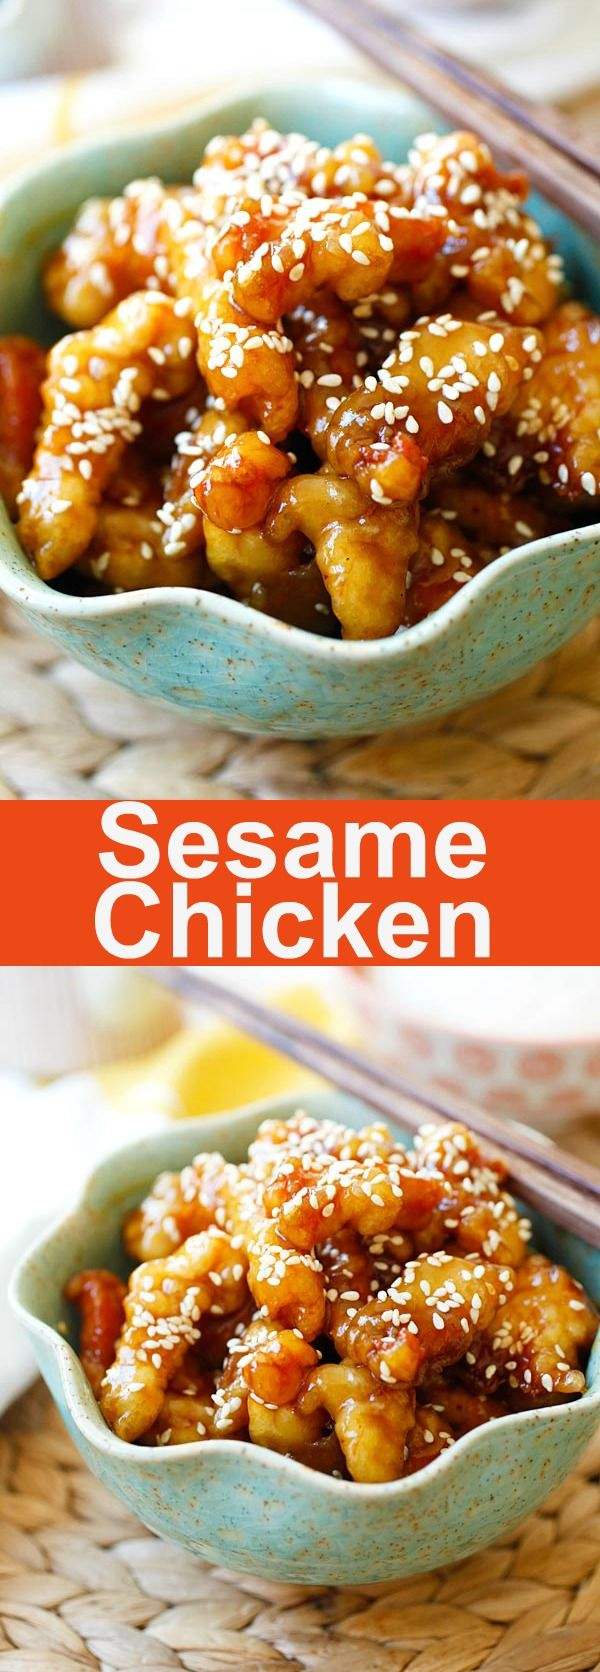 Sesame Chicken – crispy chicken with sweet, savory sauce with lots of sesame seeds. Best and easiest recipe that is better than Chinese takeout   rasamalaysia.com